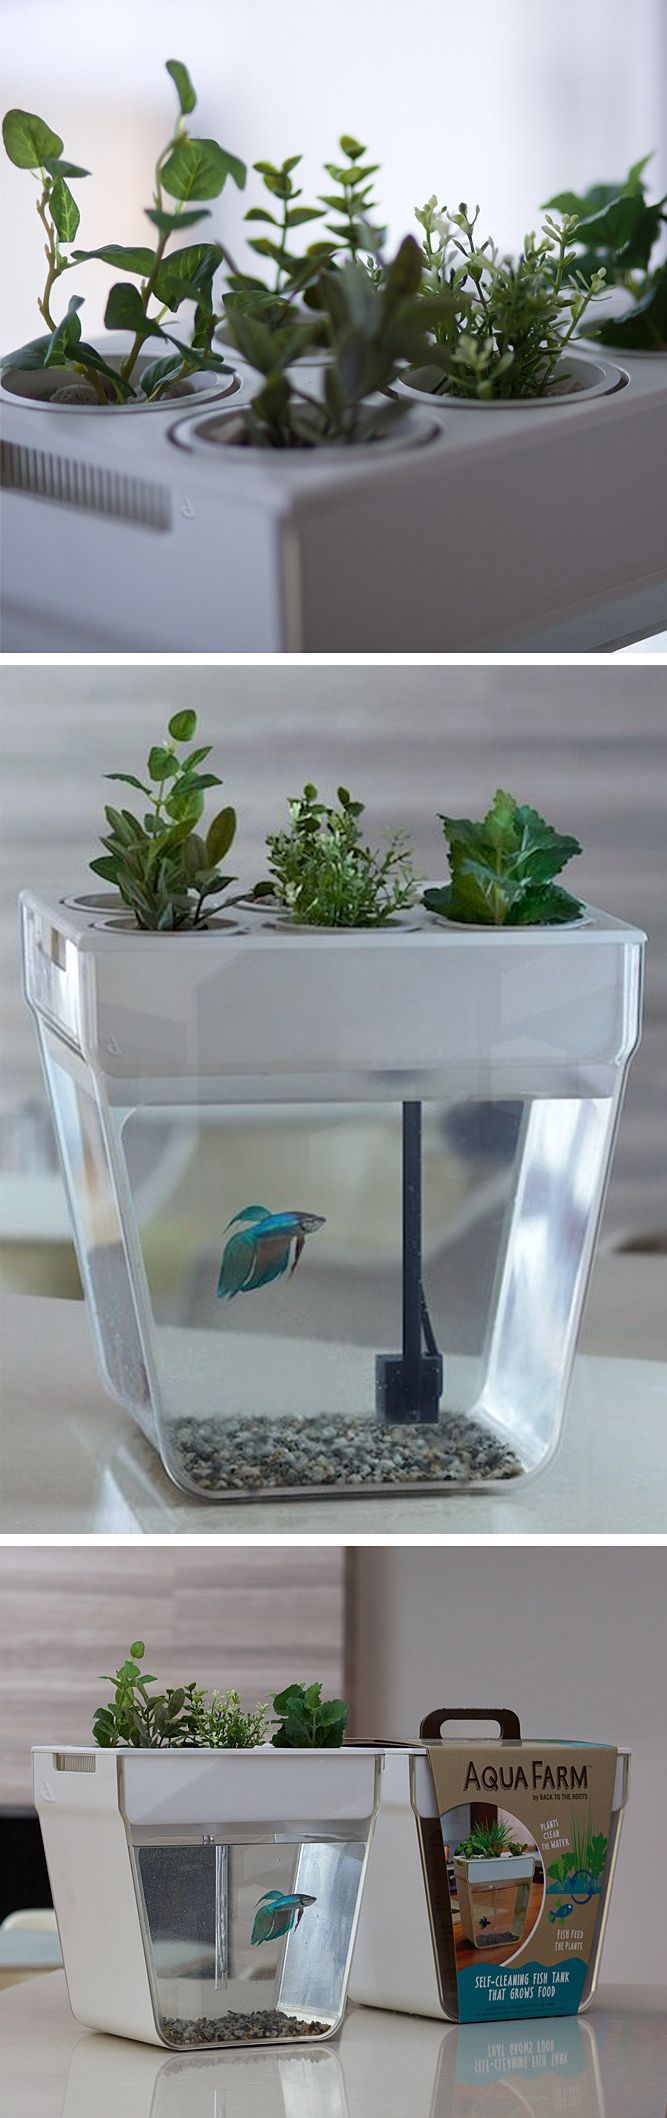 Self Cleaning Fish Tank Garden Cuteness An Indoor Garden And Fish Tank Combo Home Goodness